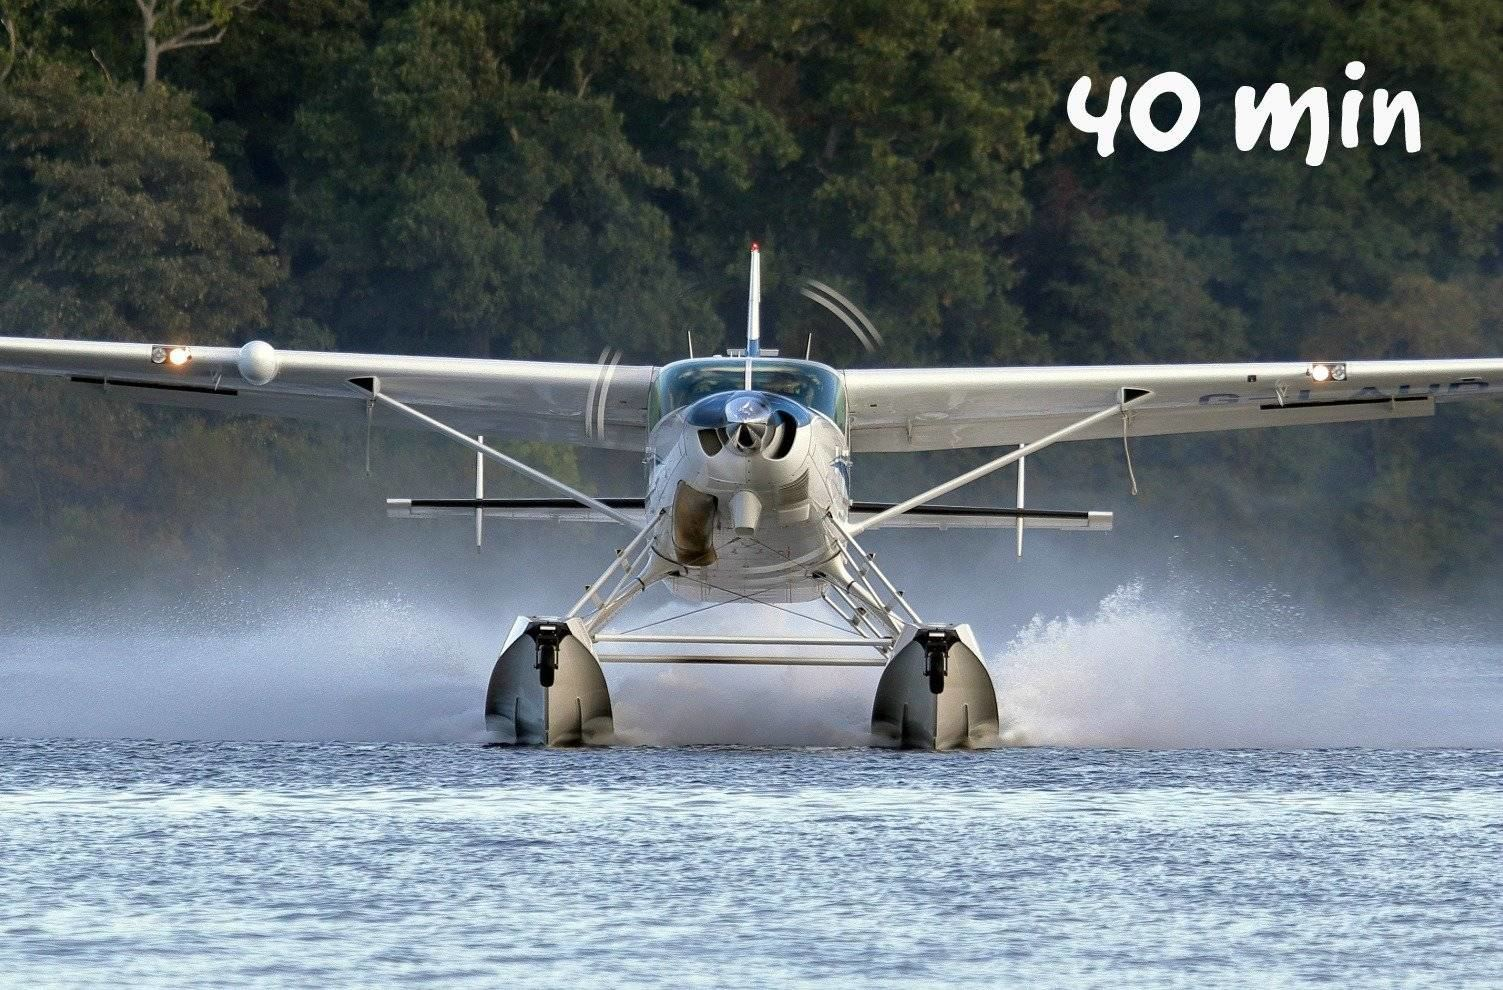 DISCOVERY TOUR - 40 MINUTE TOUR EXPERIENCE30 MINUTES IN FLIGHTFLY OVER 60 MILESFLY OVER SCOTLAND'S MAGNIFICENT HIGHLANDS & ISLANDSVIEW THE TOUR MAP